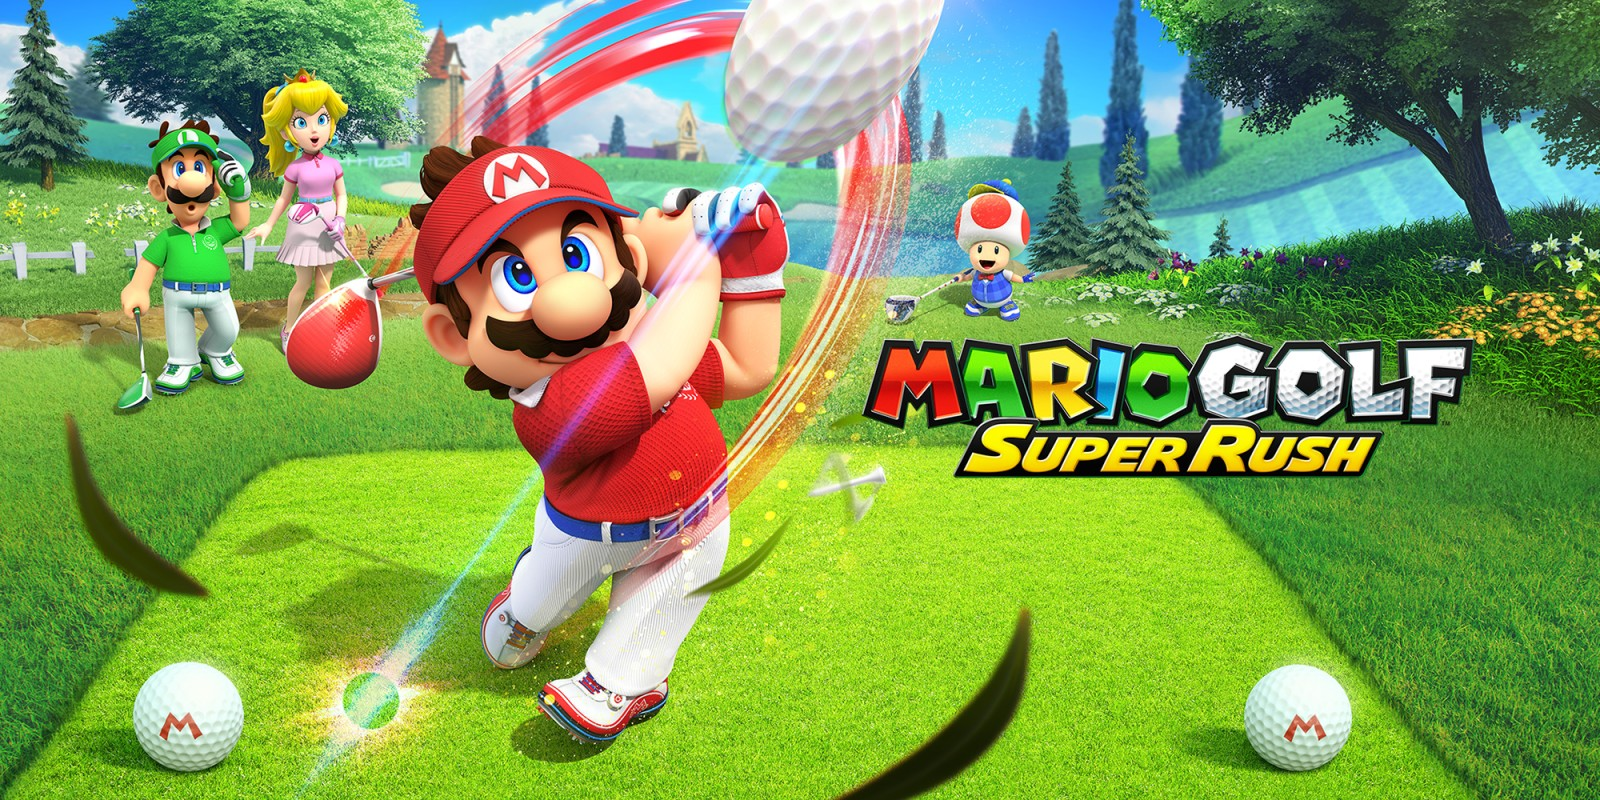 Last Game You Finished And Your Four-ghts - Page 34 H2x1_NSwitch_MarioGolfSuperRush_image1600w